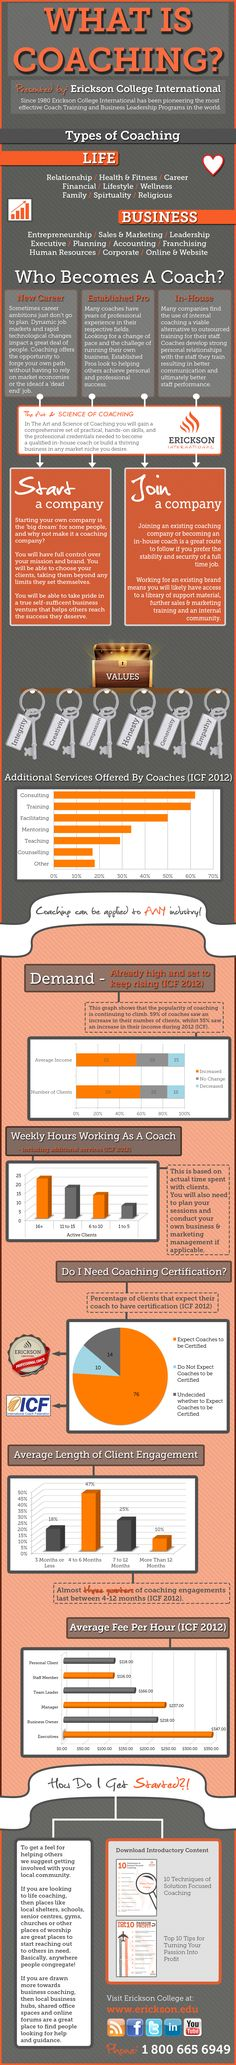 What_Is_Coaching_Infographic_v2